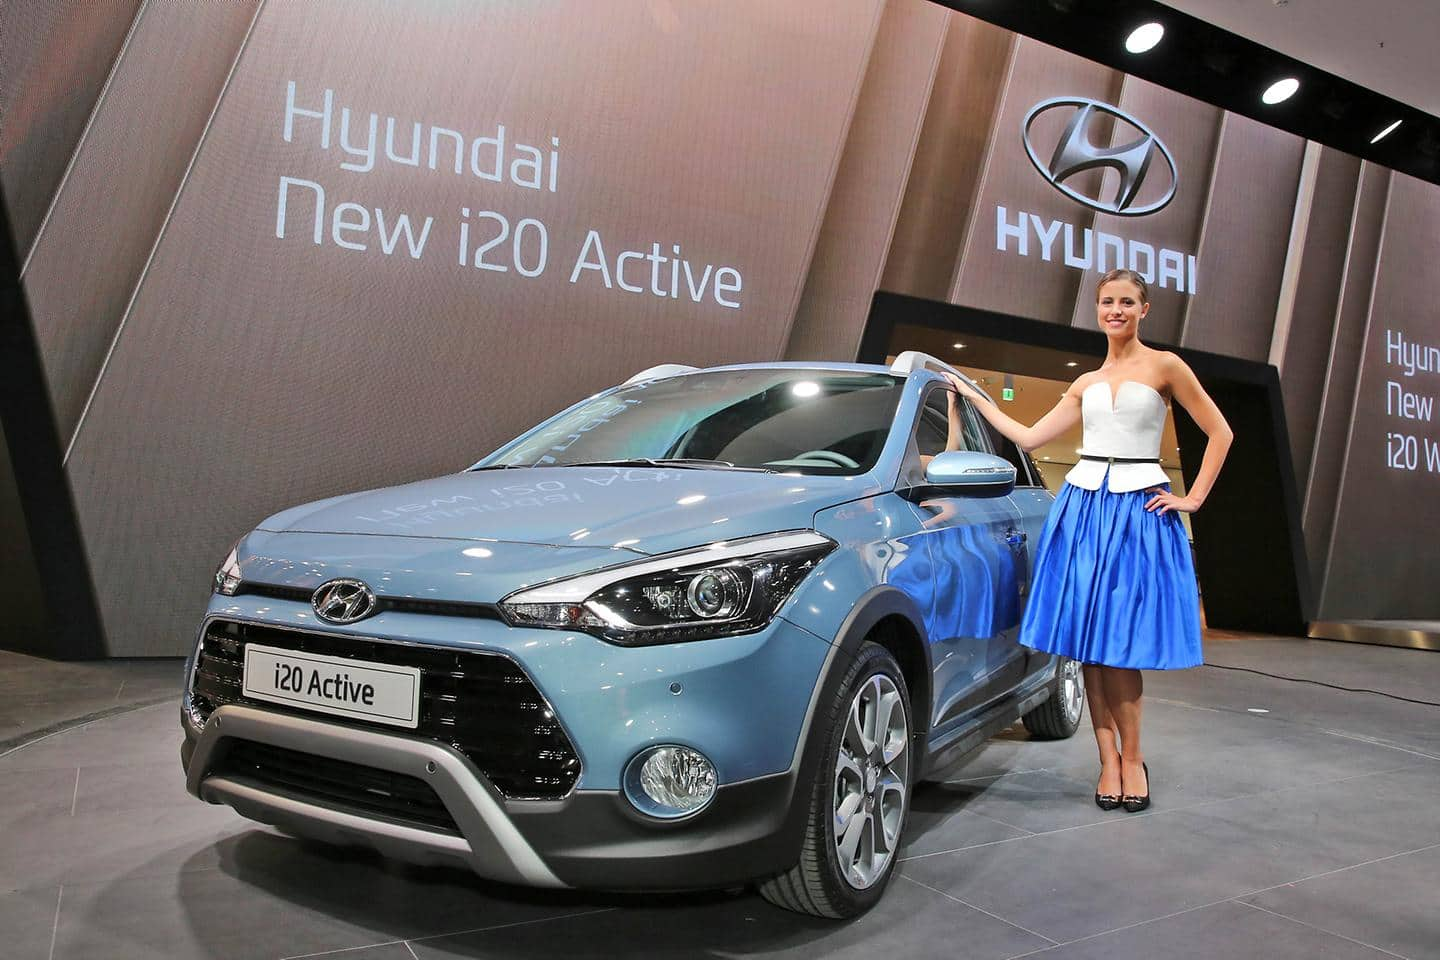 New i20 Active - rugged crossover for urban adventure